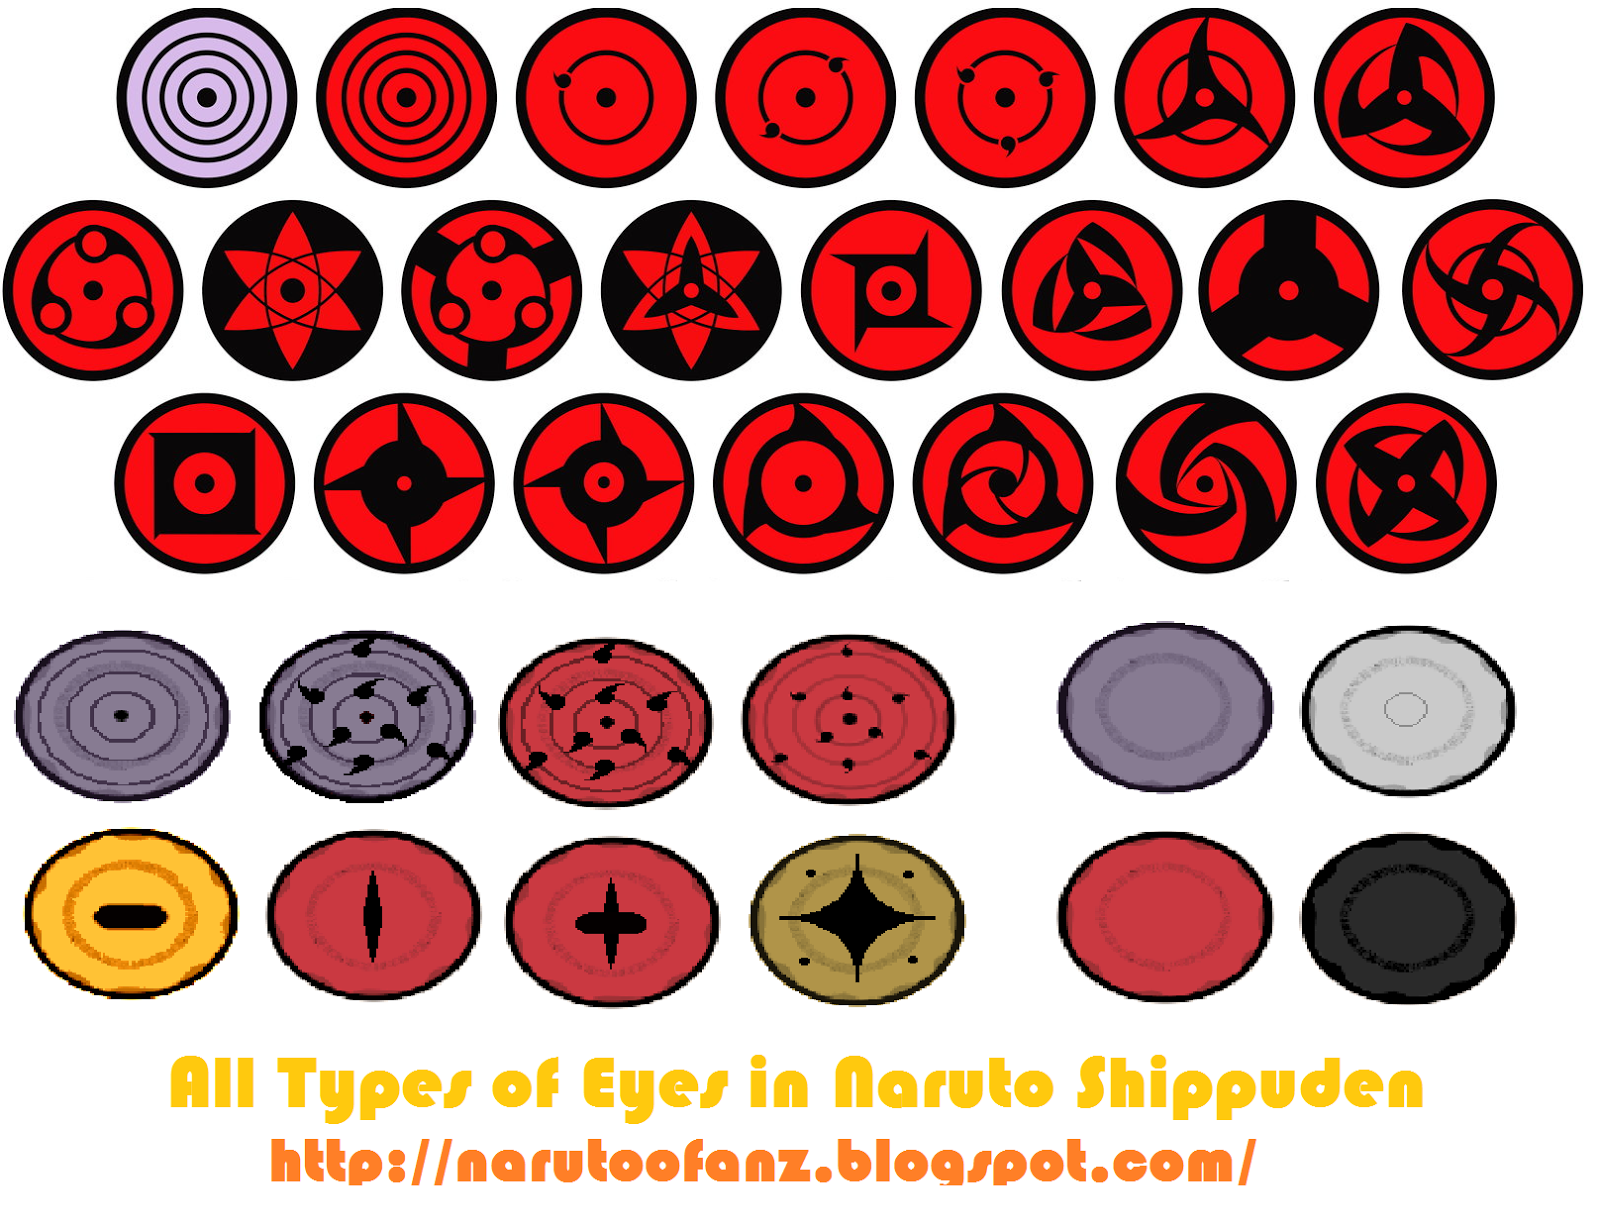 All Types of Eyes in Naruto Shippuden